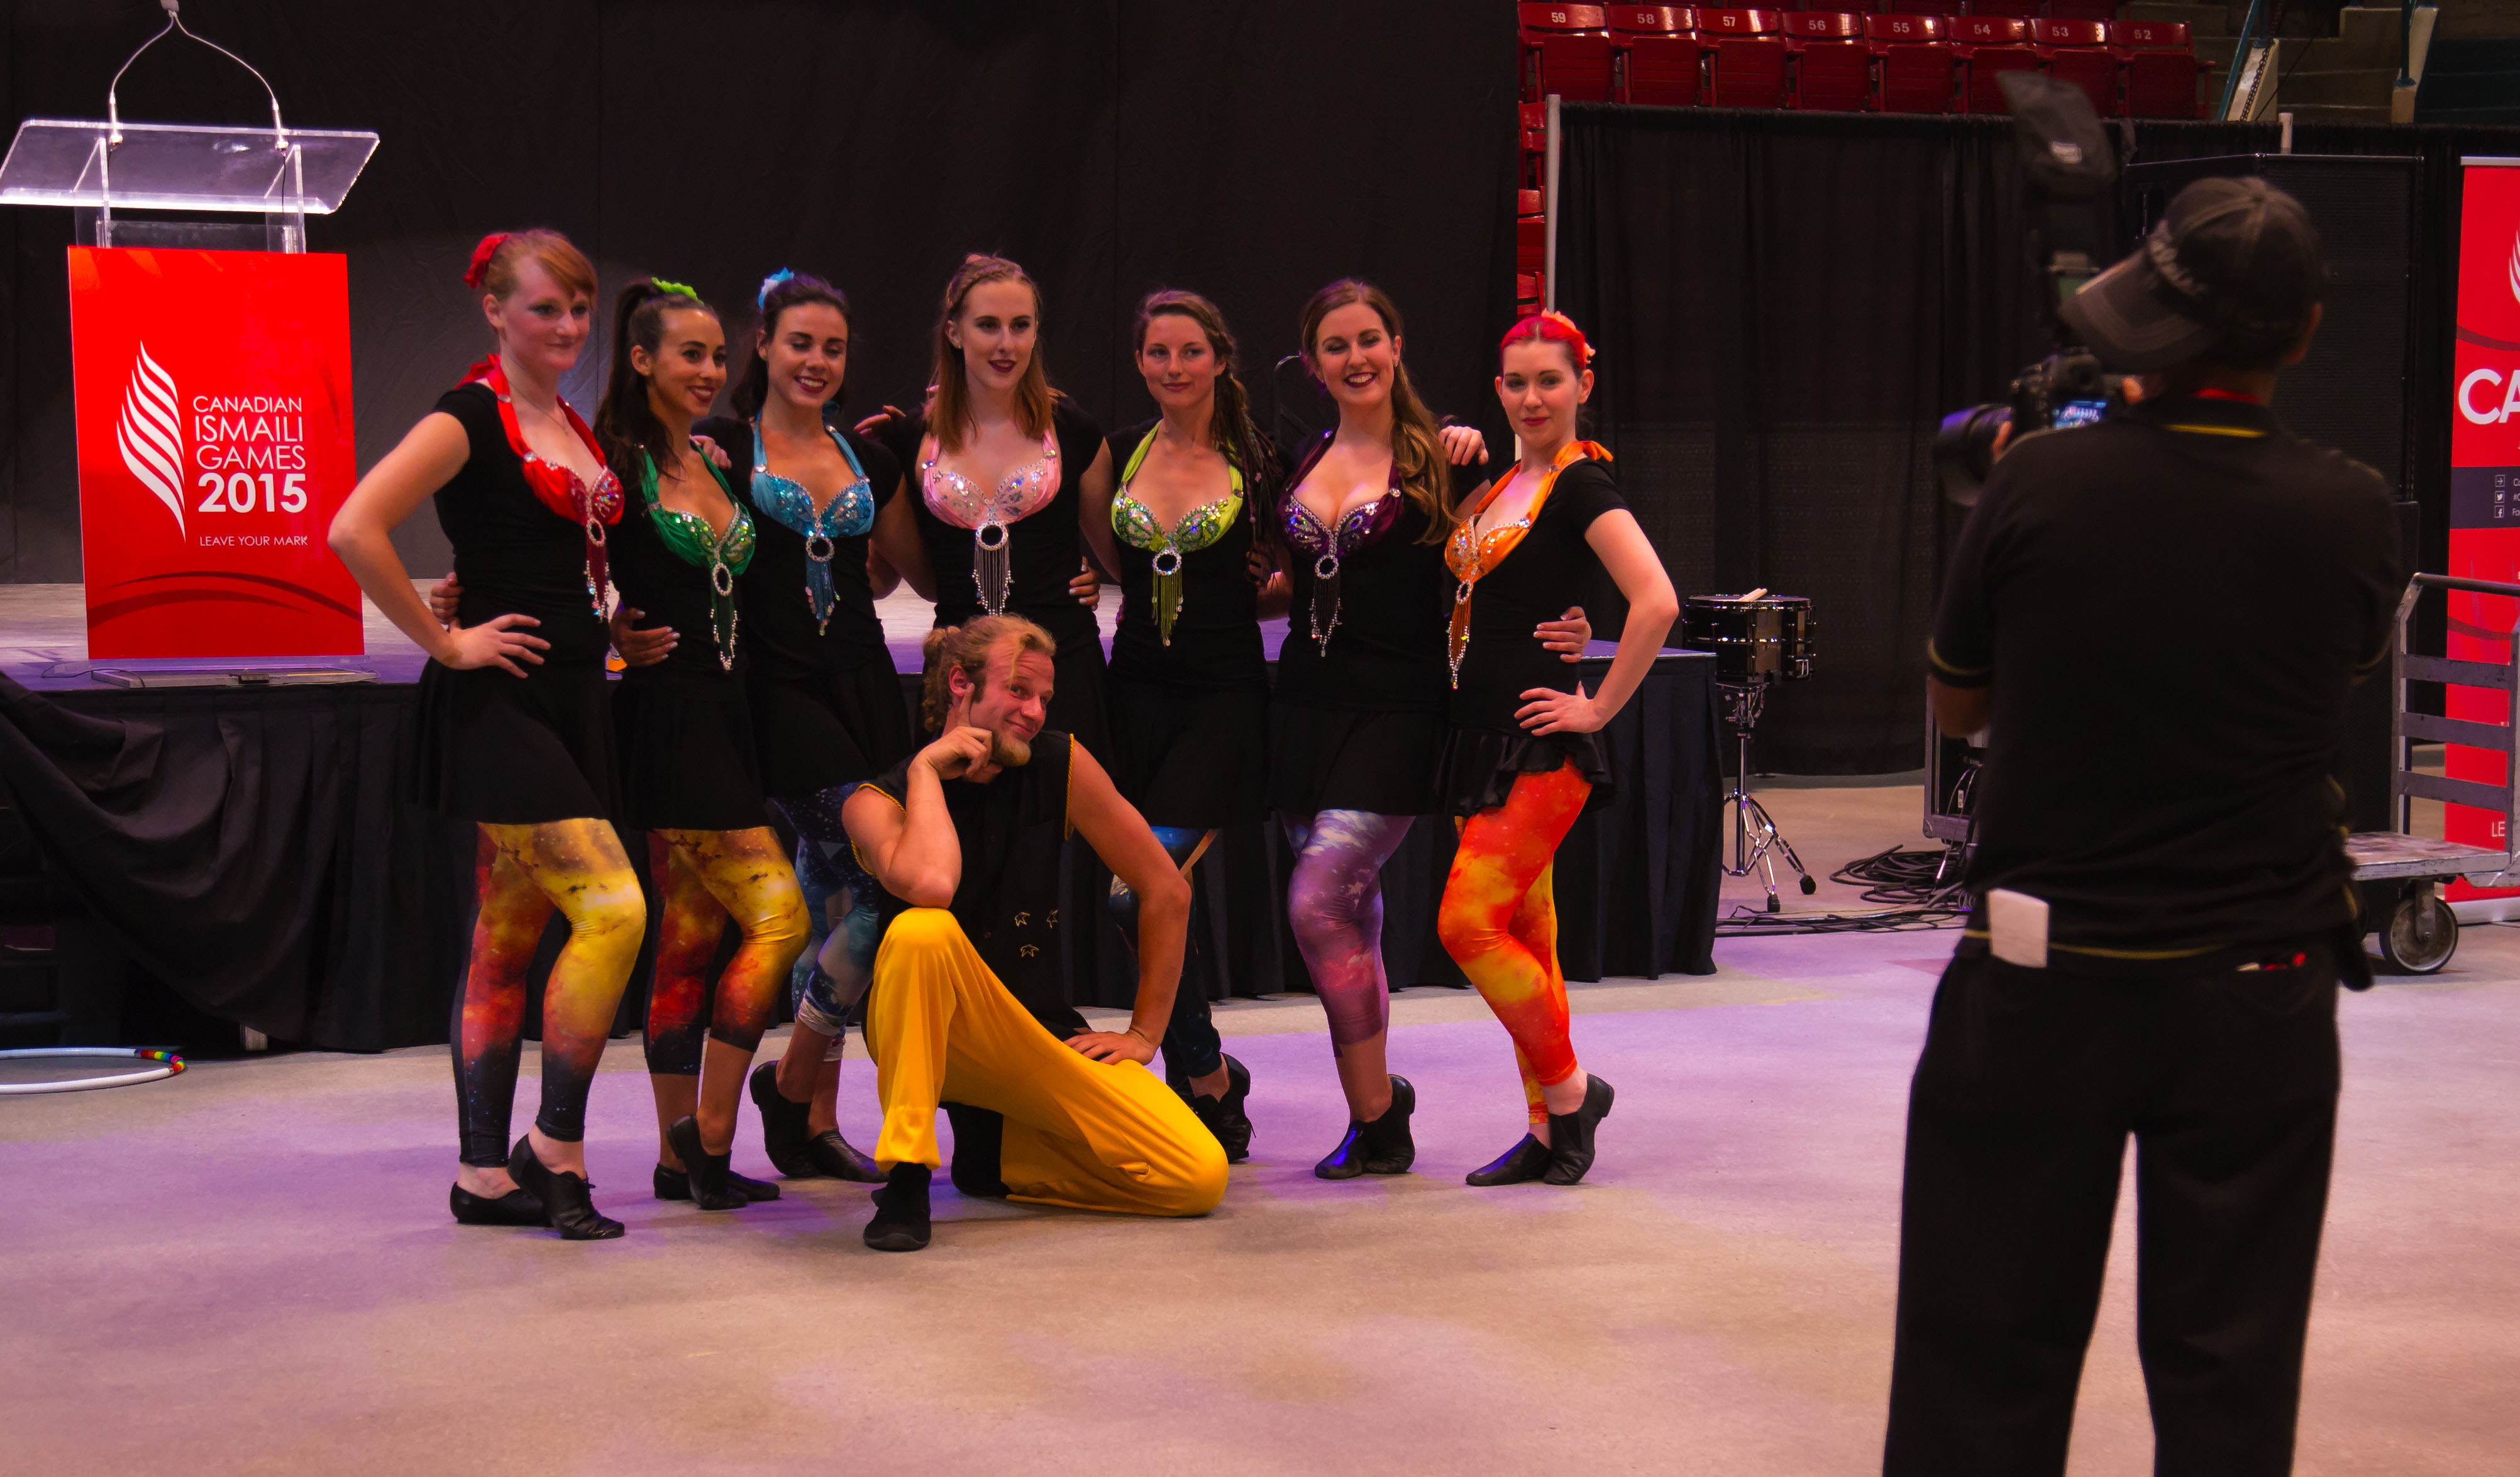 Our Fire Dancers at the 2015 Canadian Ismaili Games